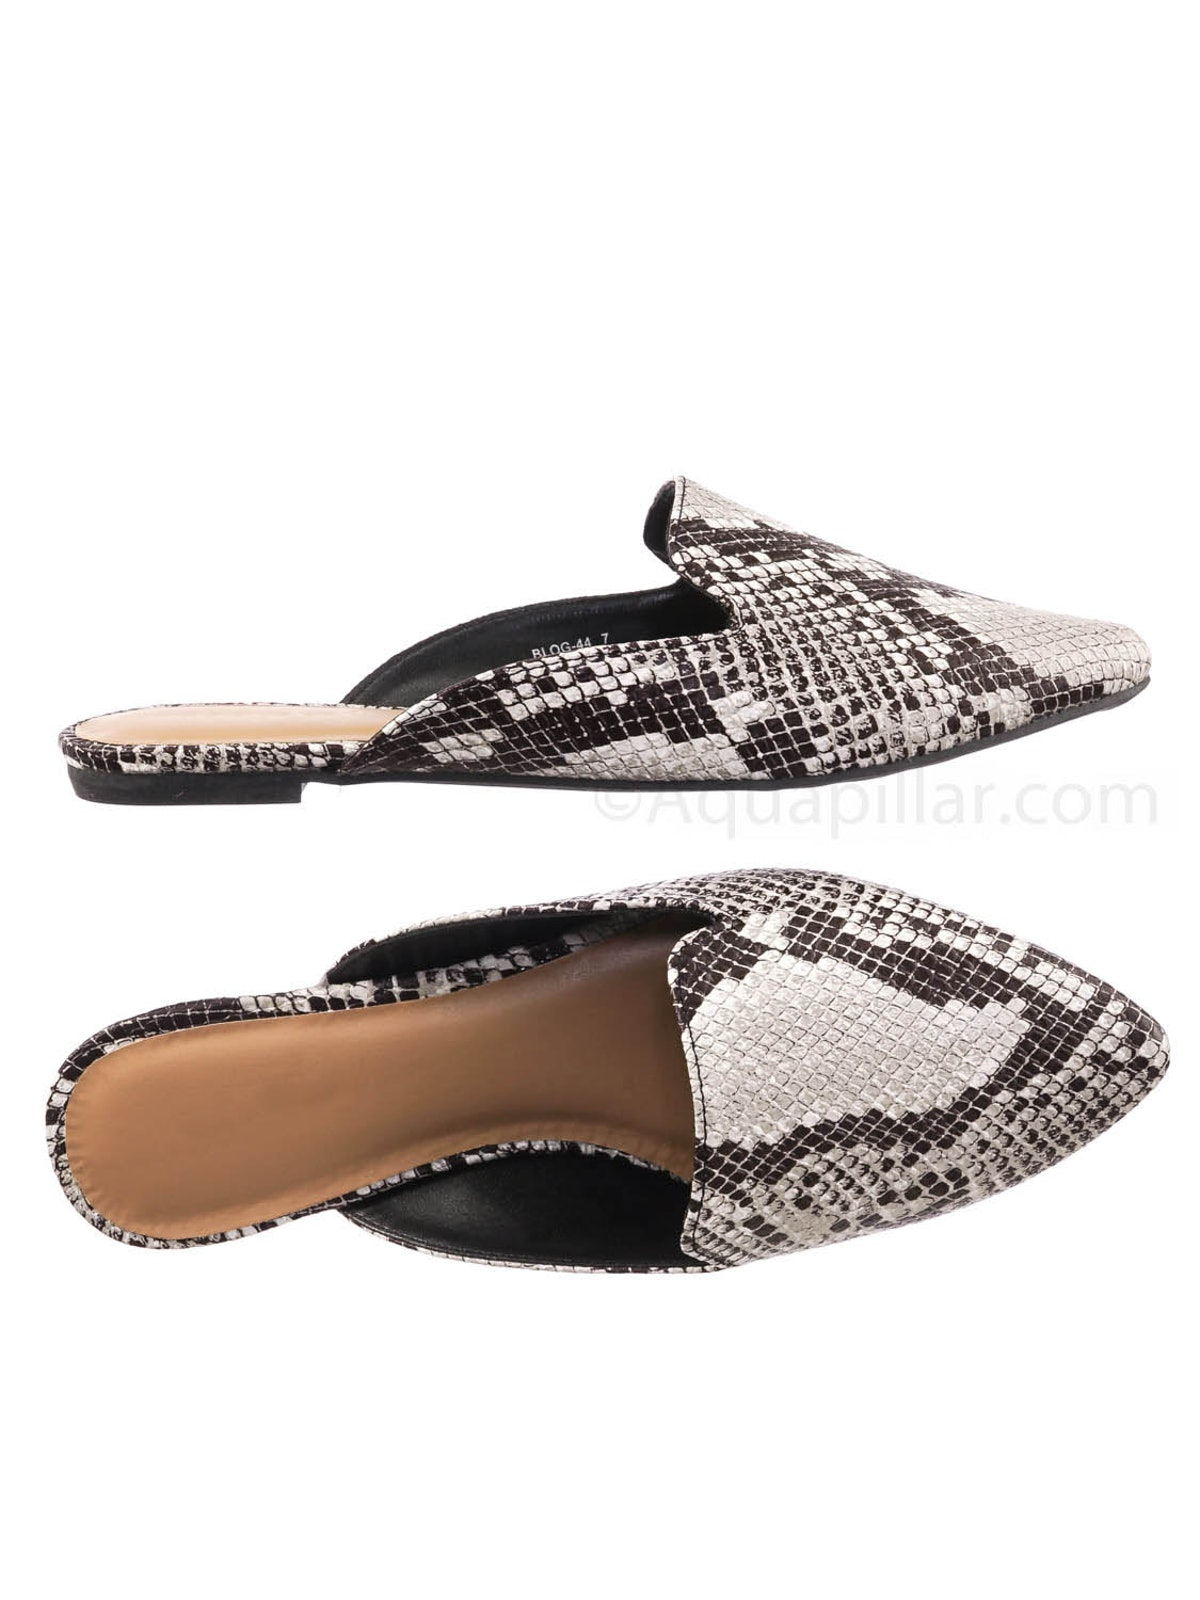 Blog44 by Bamboo, Slip On Mule Slippers